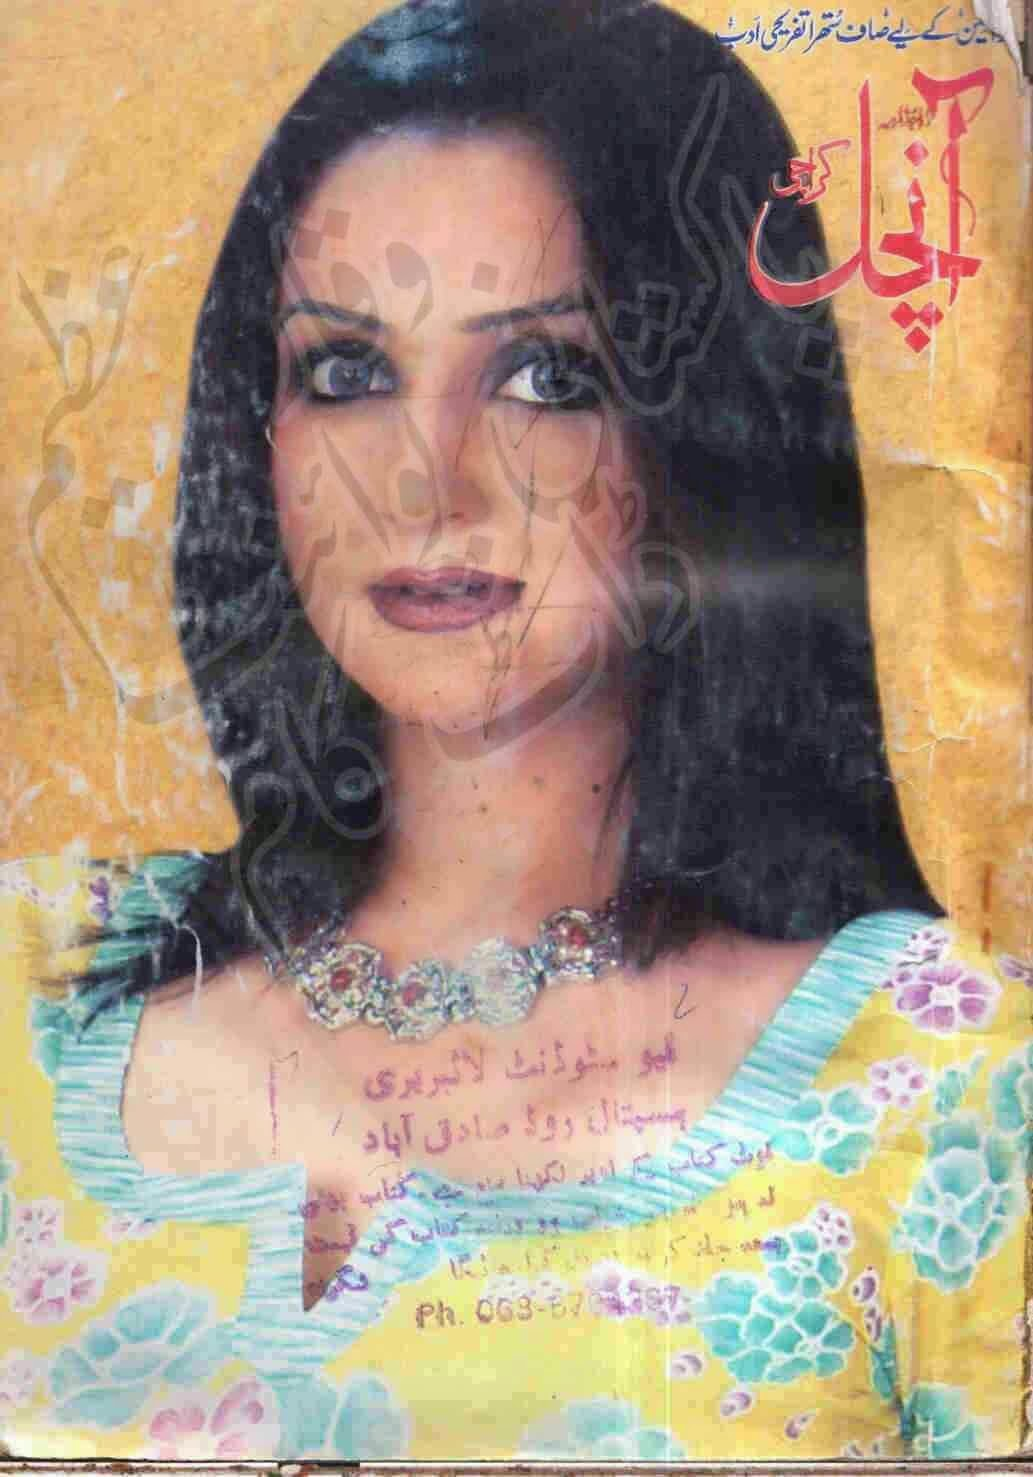 Free download Aanchal Digest February 2008 pdf, Online reading.